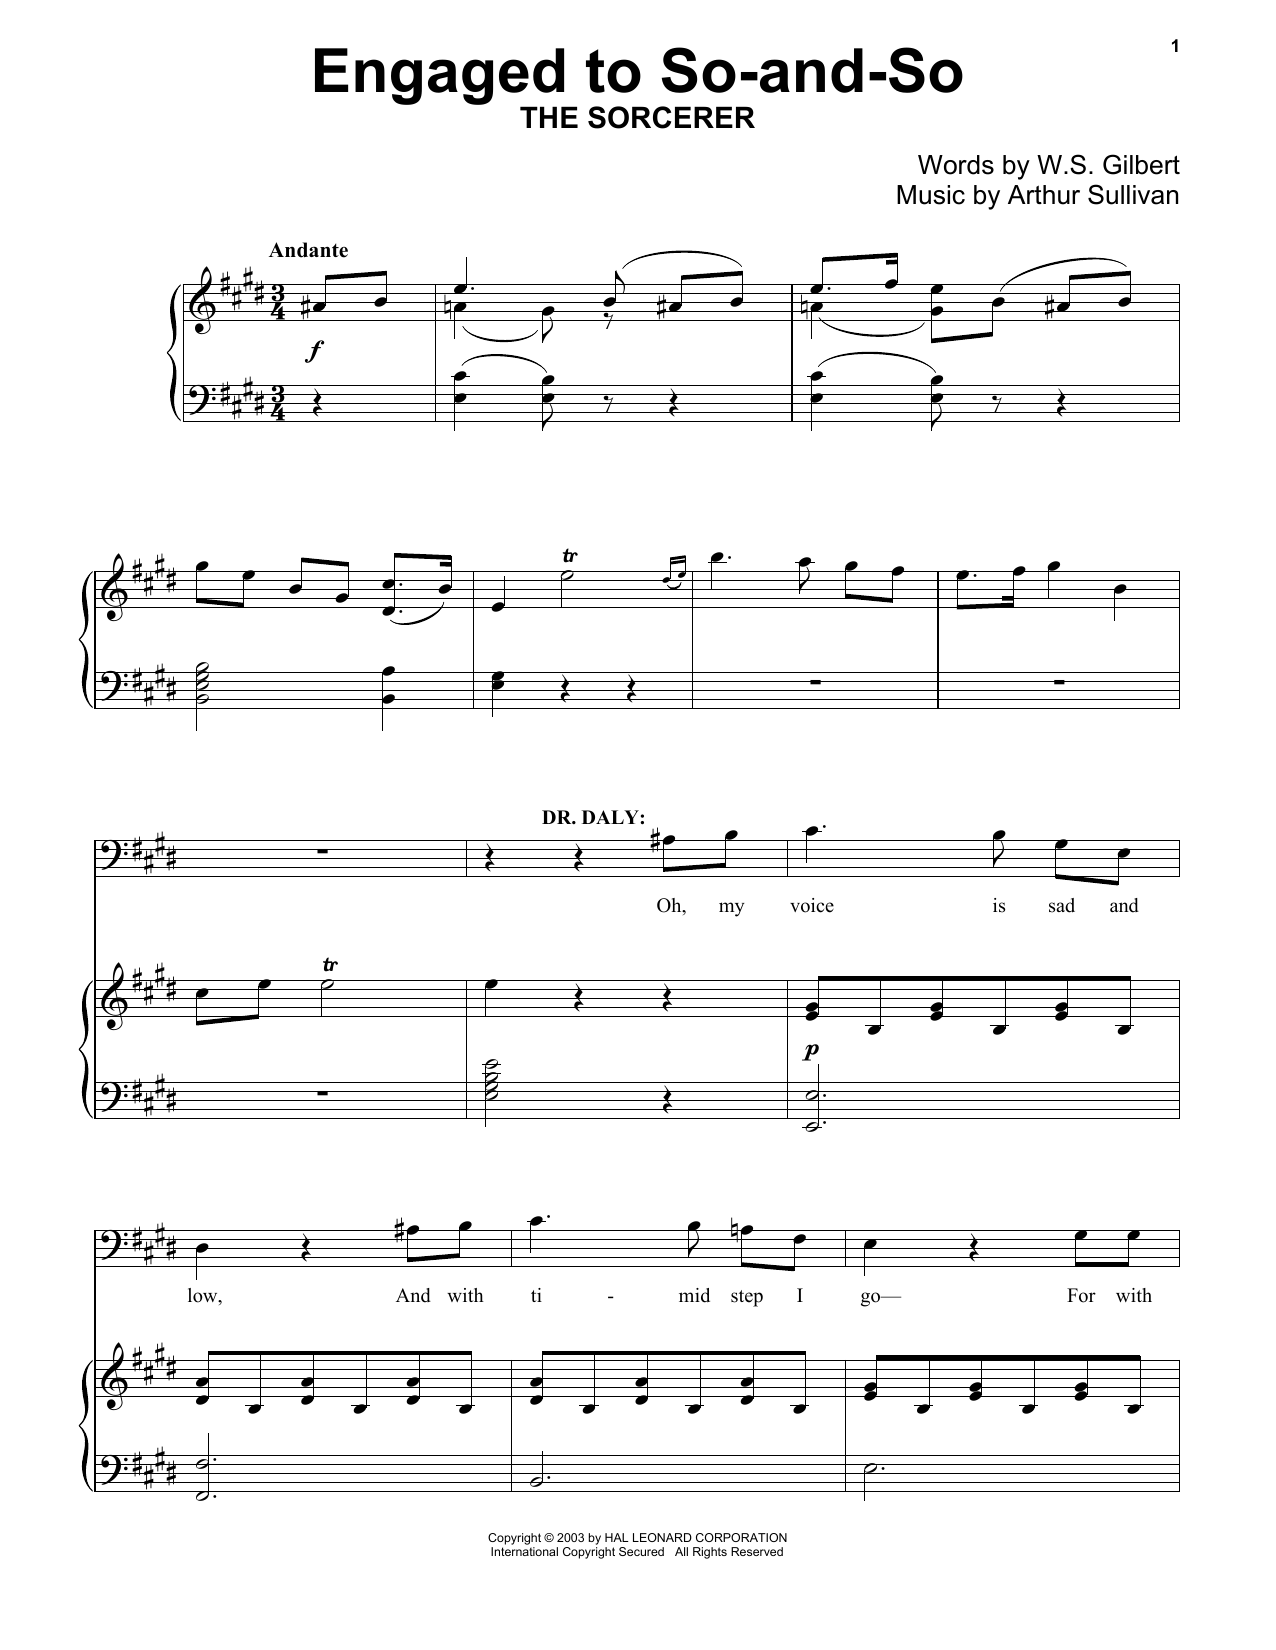 Gilbert & Sullivan Engaged To So-And-So sheet music notes and chords. Download Printable PDF.